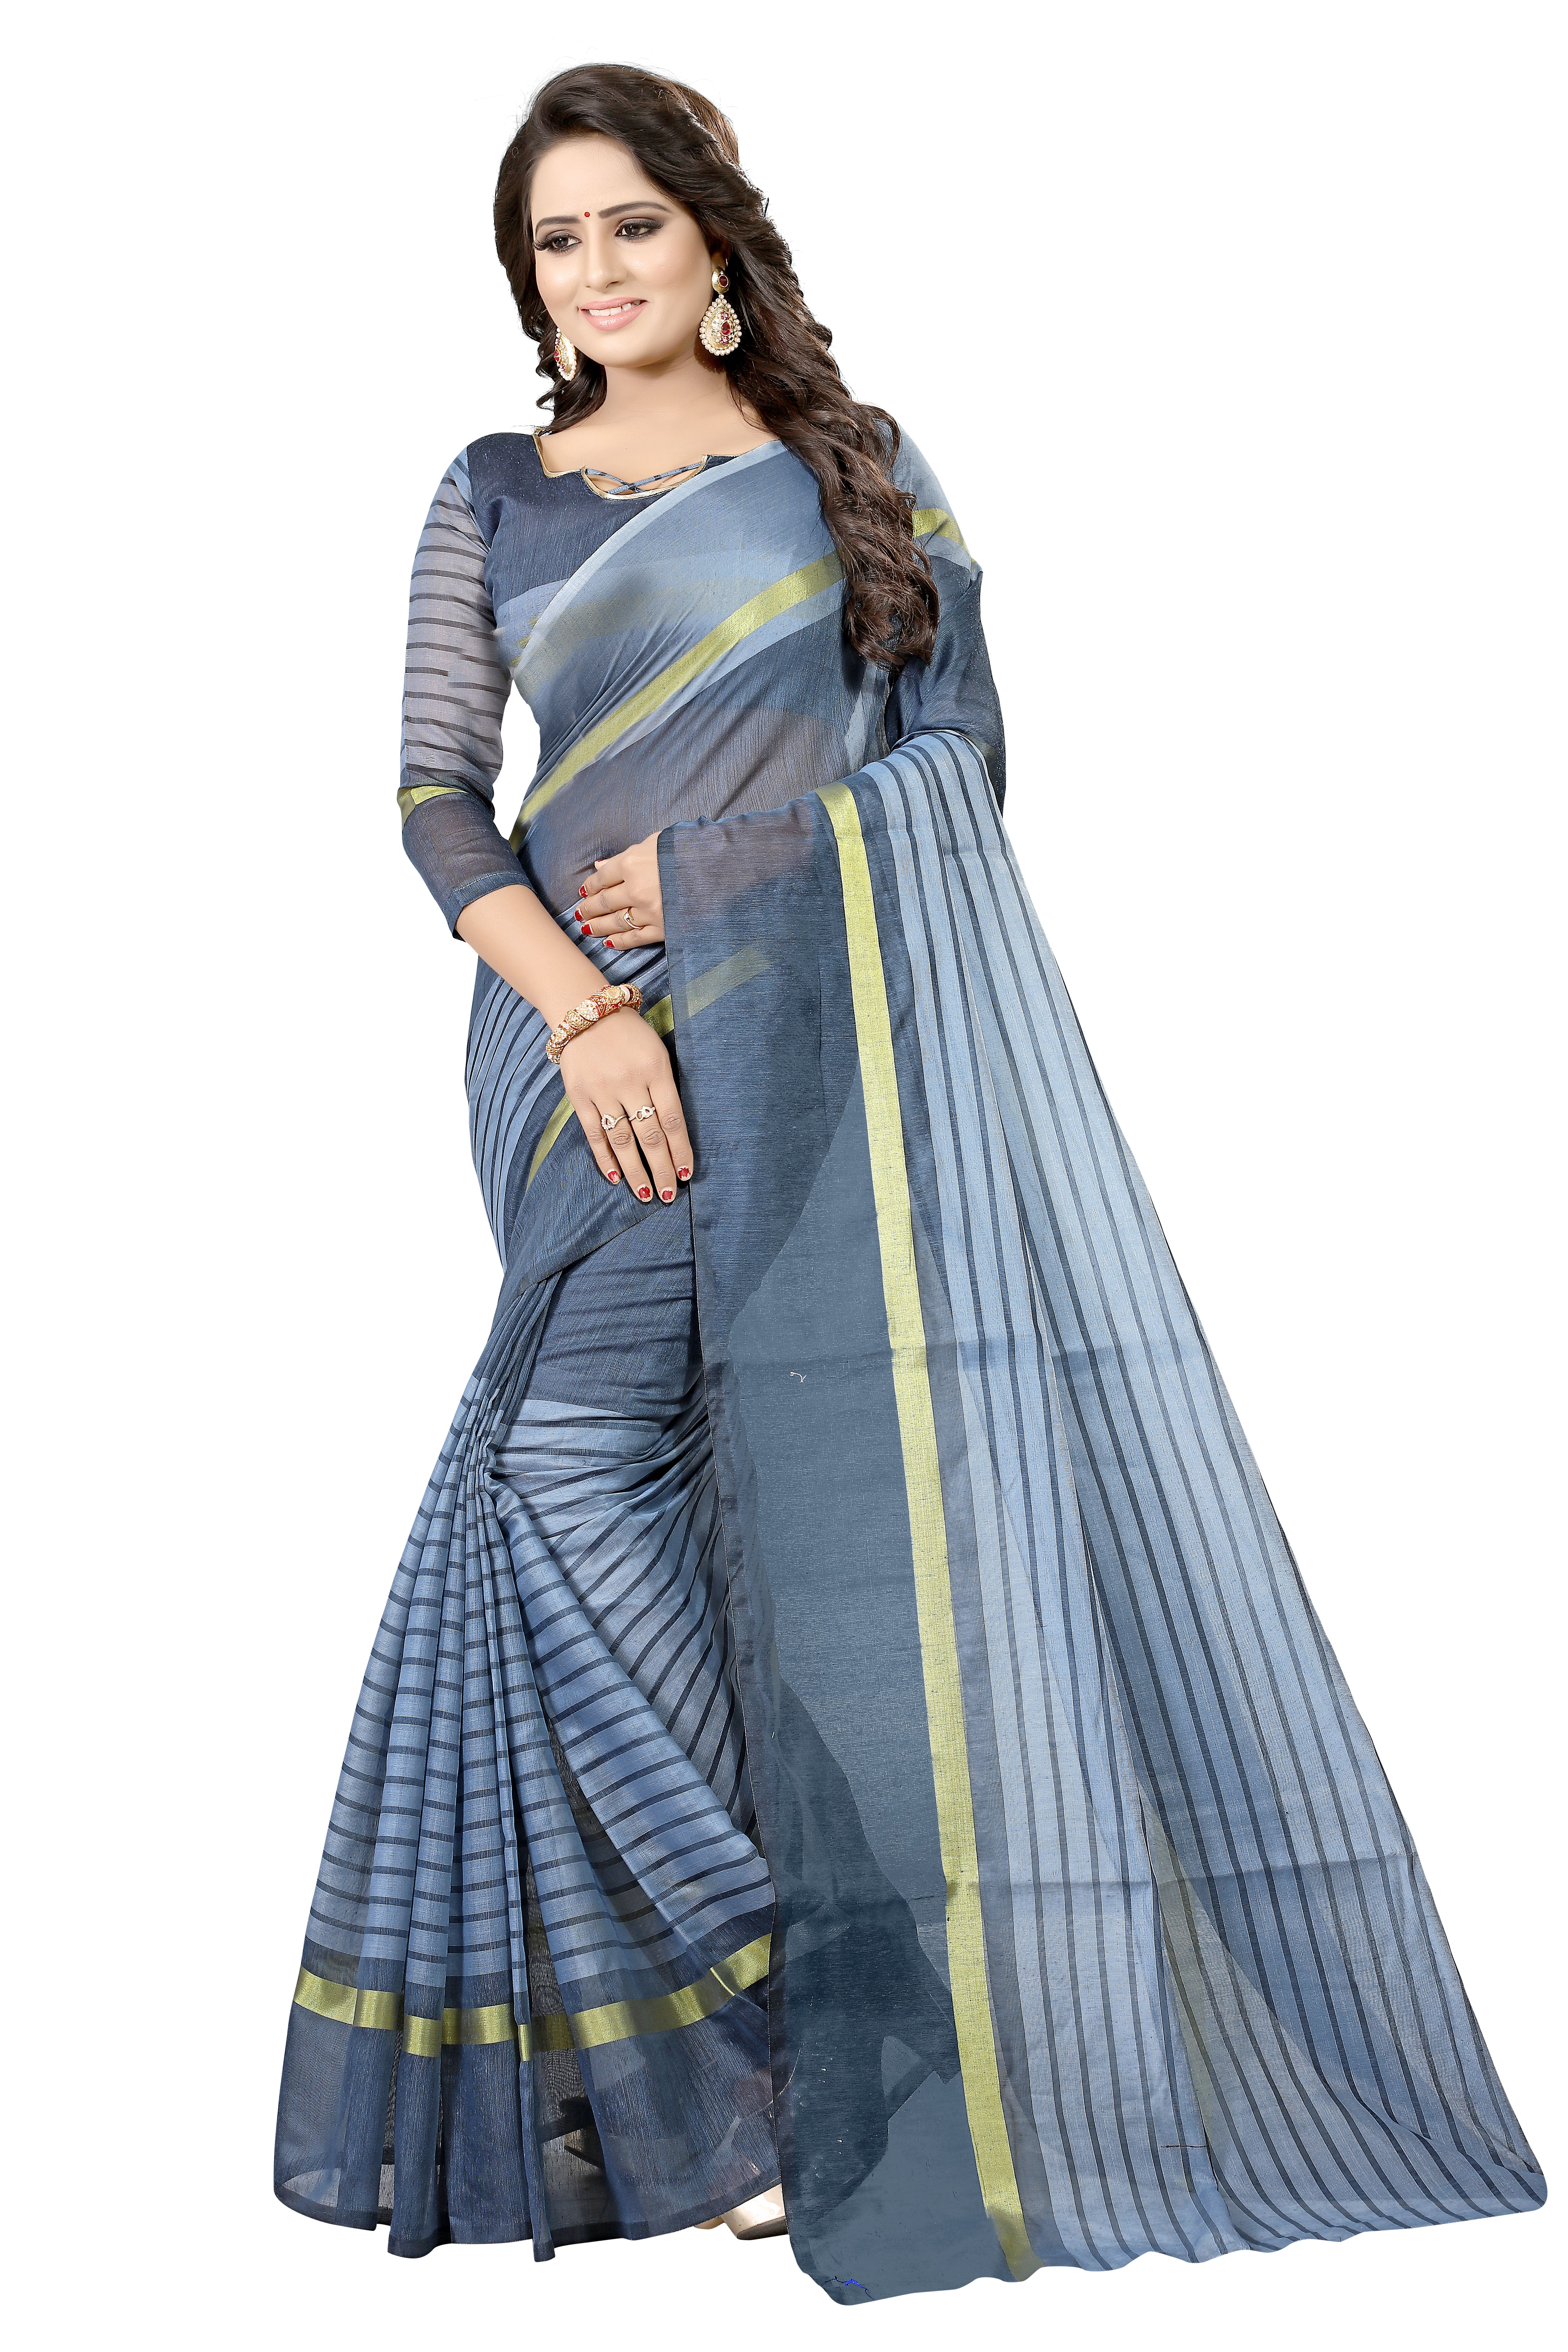 3e9396282a New Designer Cotton Silk Saree With Blouse | Only on  trendyecomshop.shopwithme.in | Best Saree Online